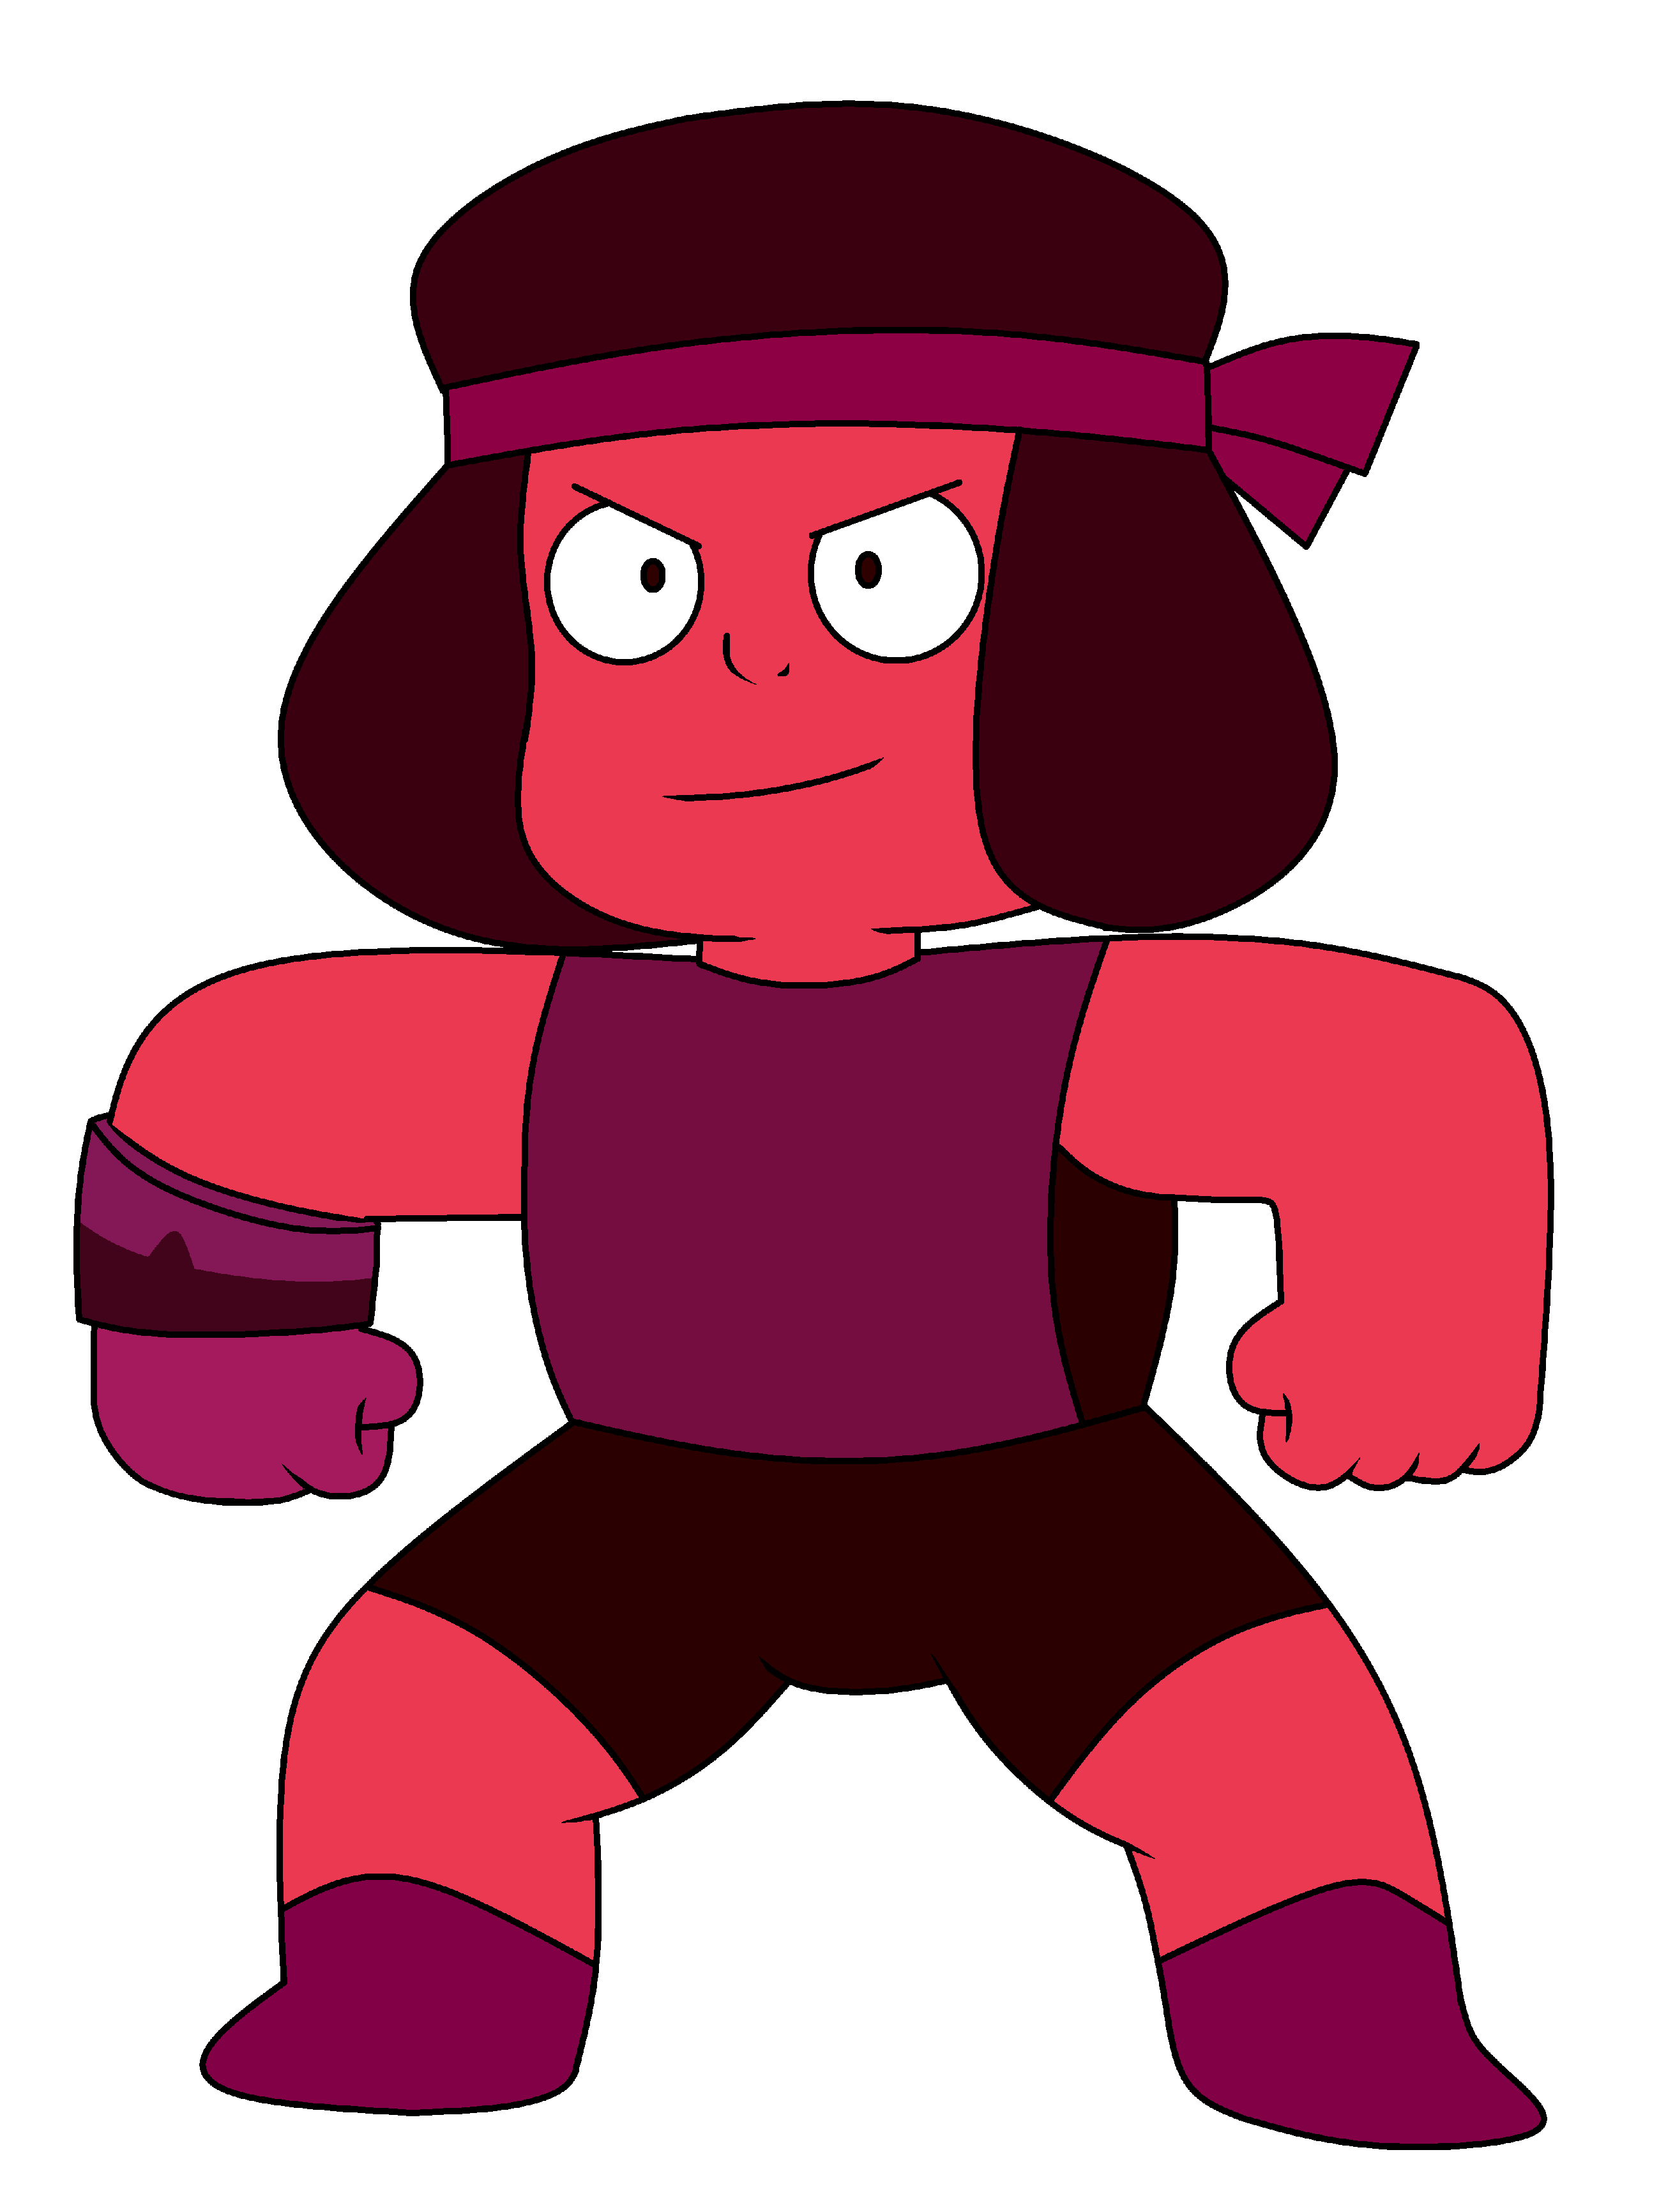 Fichier:Ruby - Weaponized.png